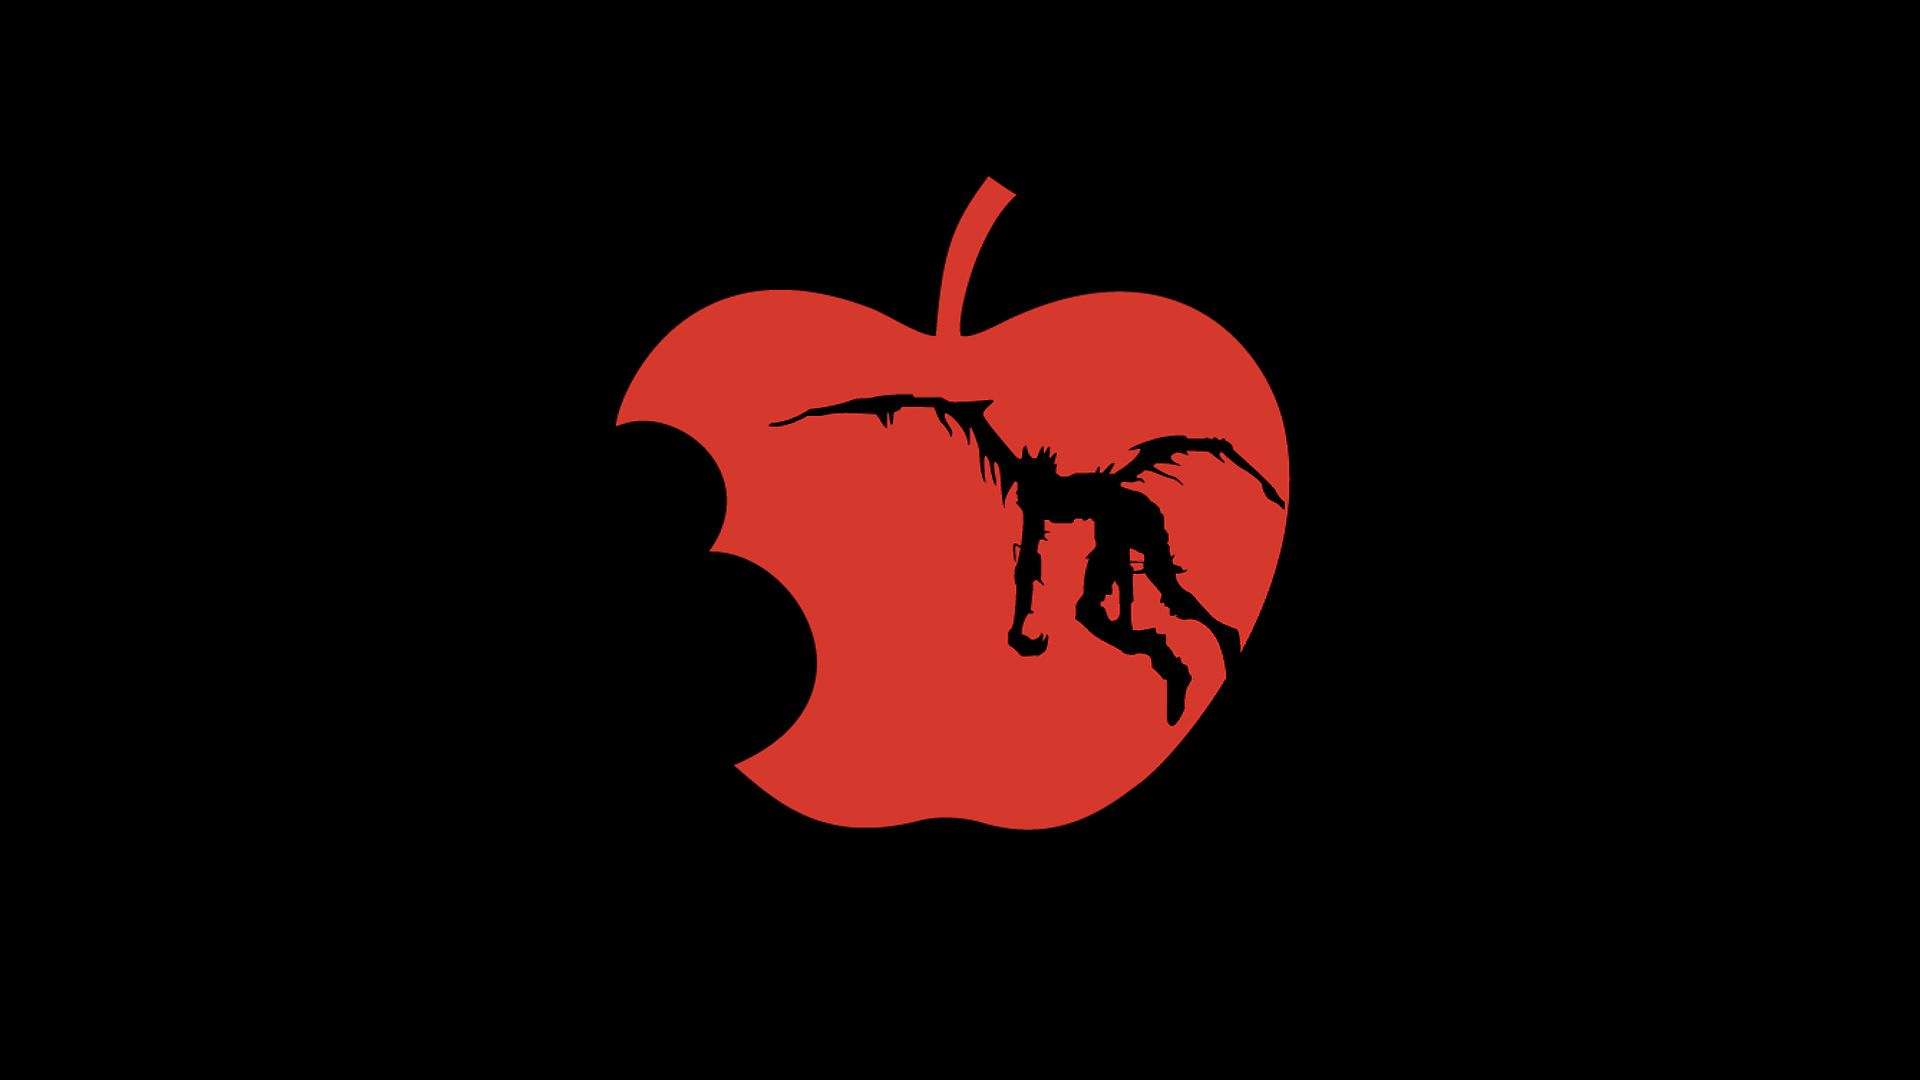 Death Note Apple Inc_ Ryuk wallpaper | 1920x1080 | 225790 ...